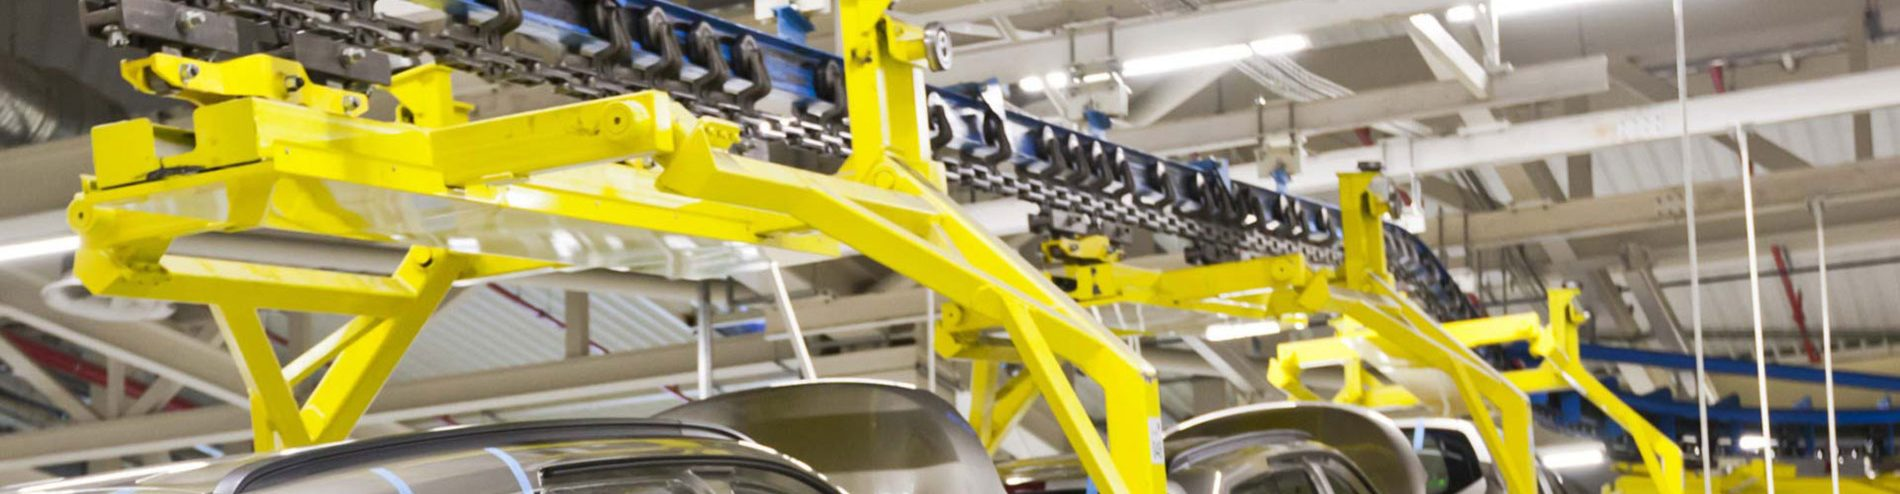 overhead chain conveyor I-beam monorail in an automotive plant